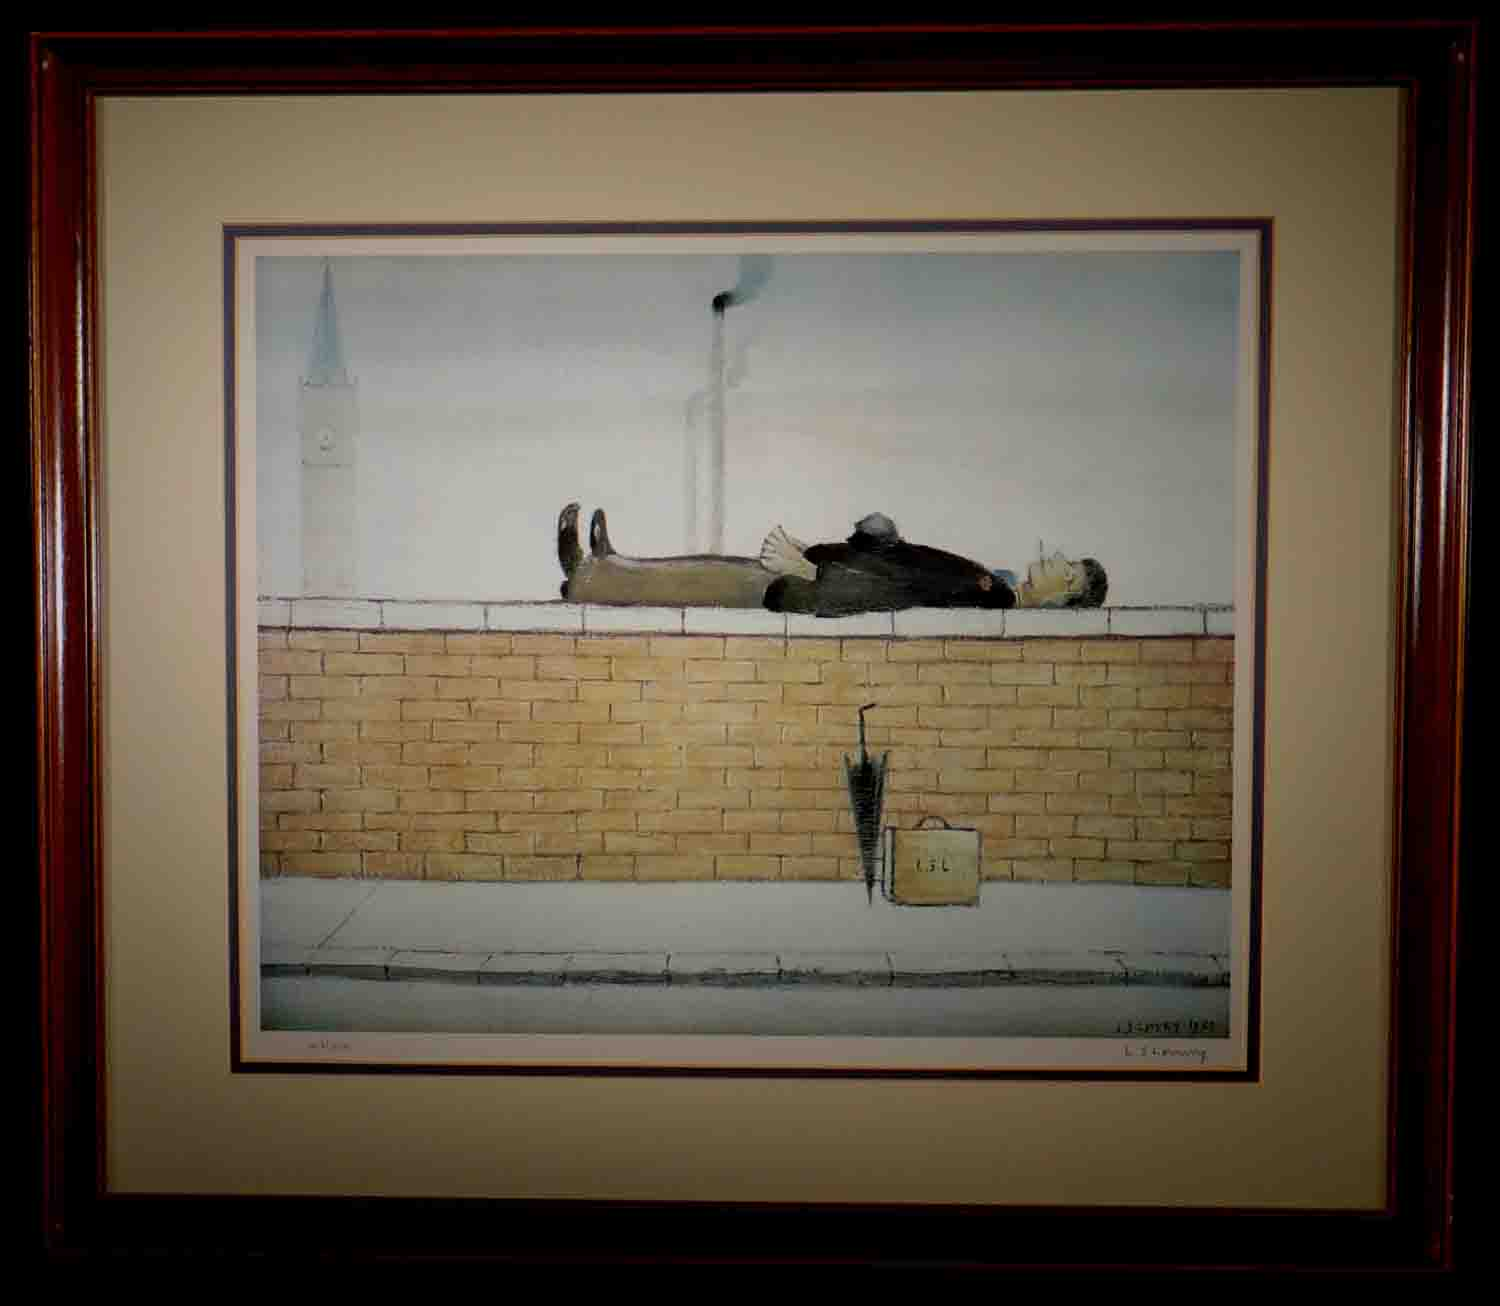 lowry, Man on a wall, signed print lslowry